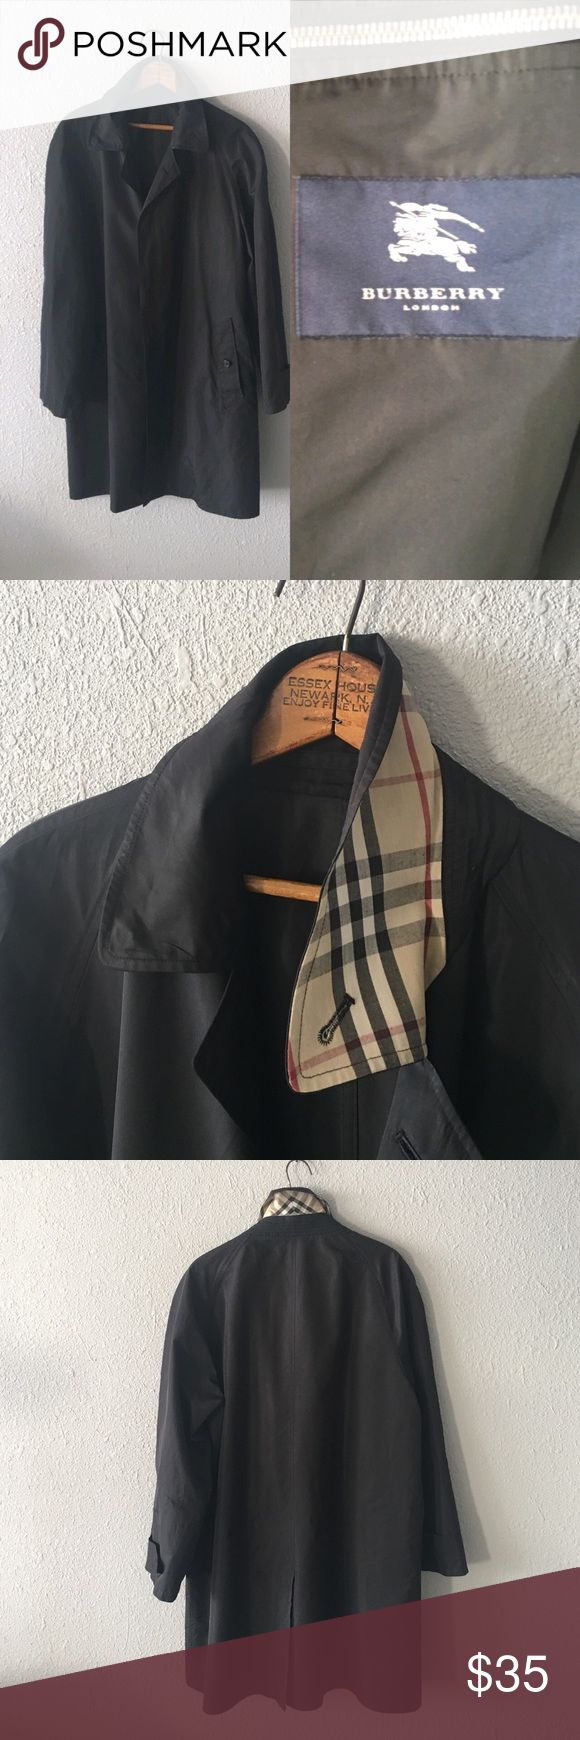 Men's Black Raincoat In great condition! I can't guarantee the authenticity. Made of nylon and fits like a men's L/XL. Chest measures 47 inches and length is 36.5 inches. Jackets & Coats Raincoats